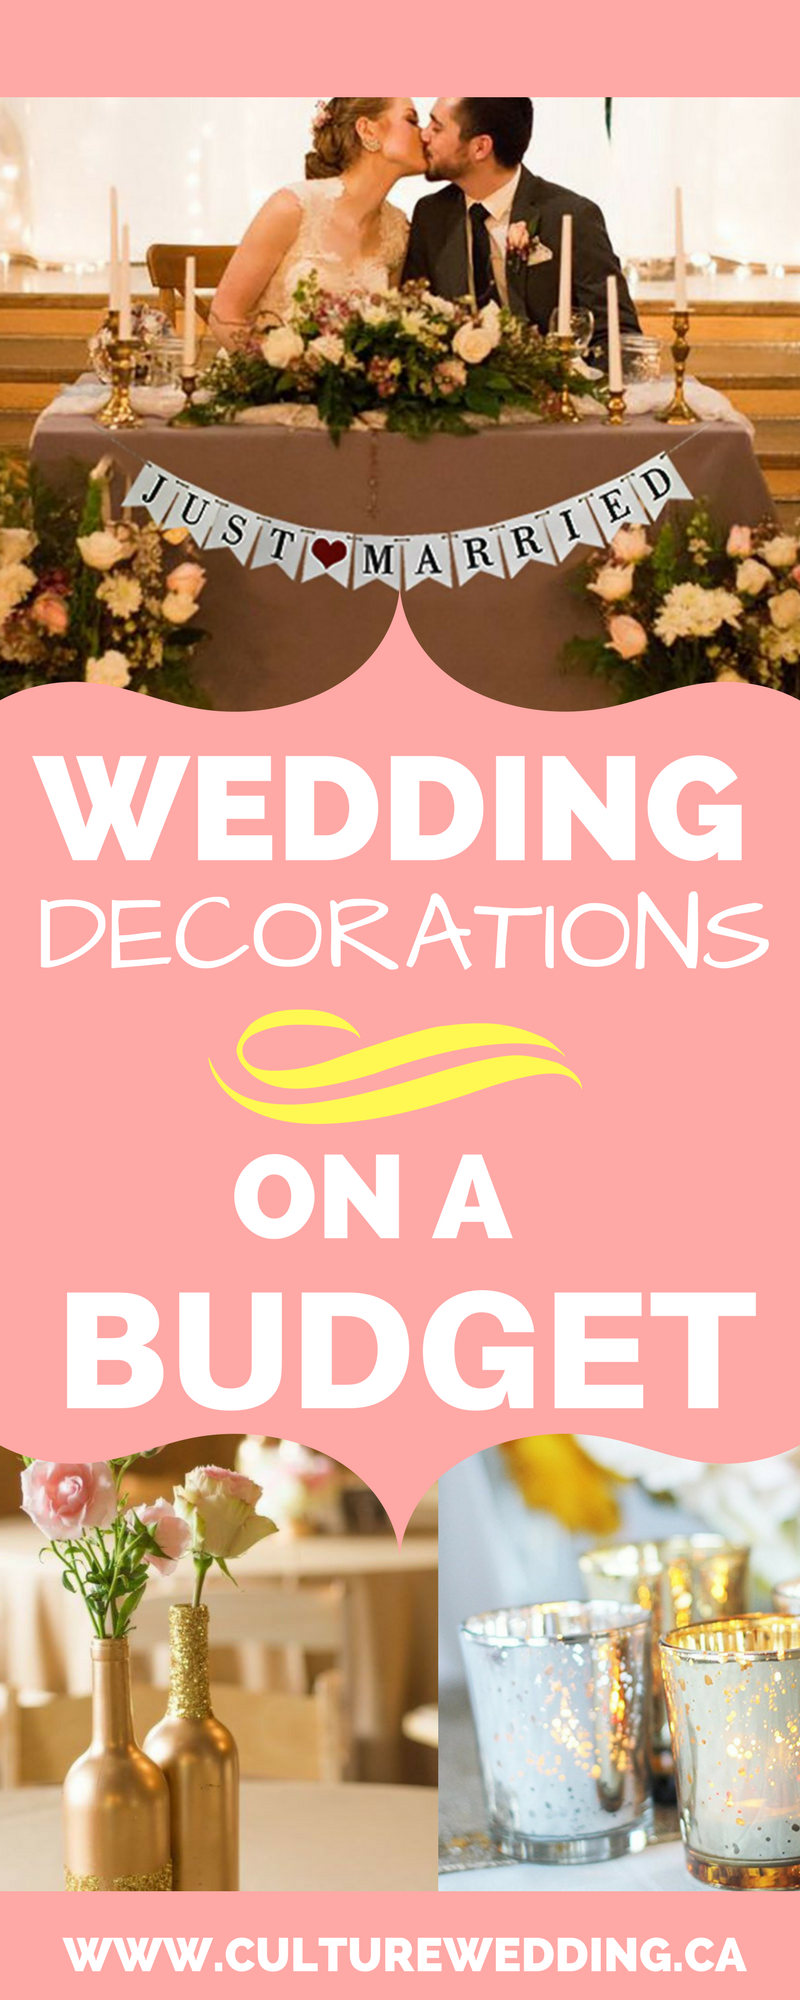 Wedding decorations on a budget. Wedding decoration ideas. Wedding reception decorations, Wedding decorations DIY. Unique wedding reception ideas on a budget. DIY Wedding decoration. Centerpieces on a budget. Affordable wedding ideas for your wedding. Budget friendly wedding decoration hacks. #weddingplanning #weddingdecorations #weddingonabudget